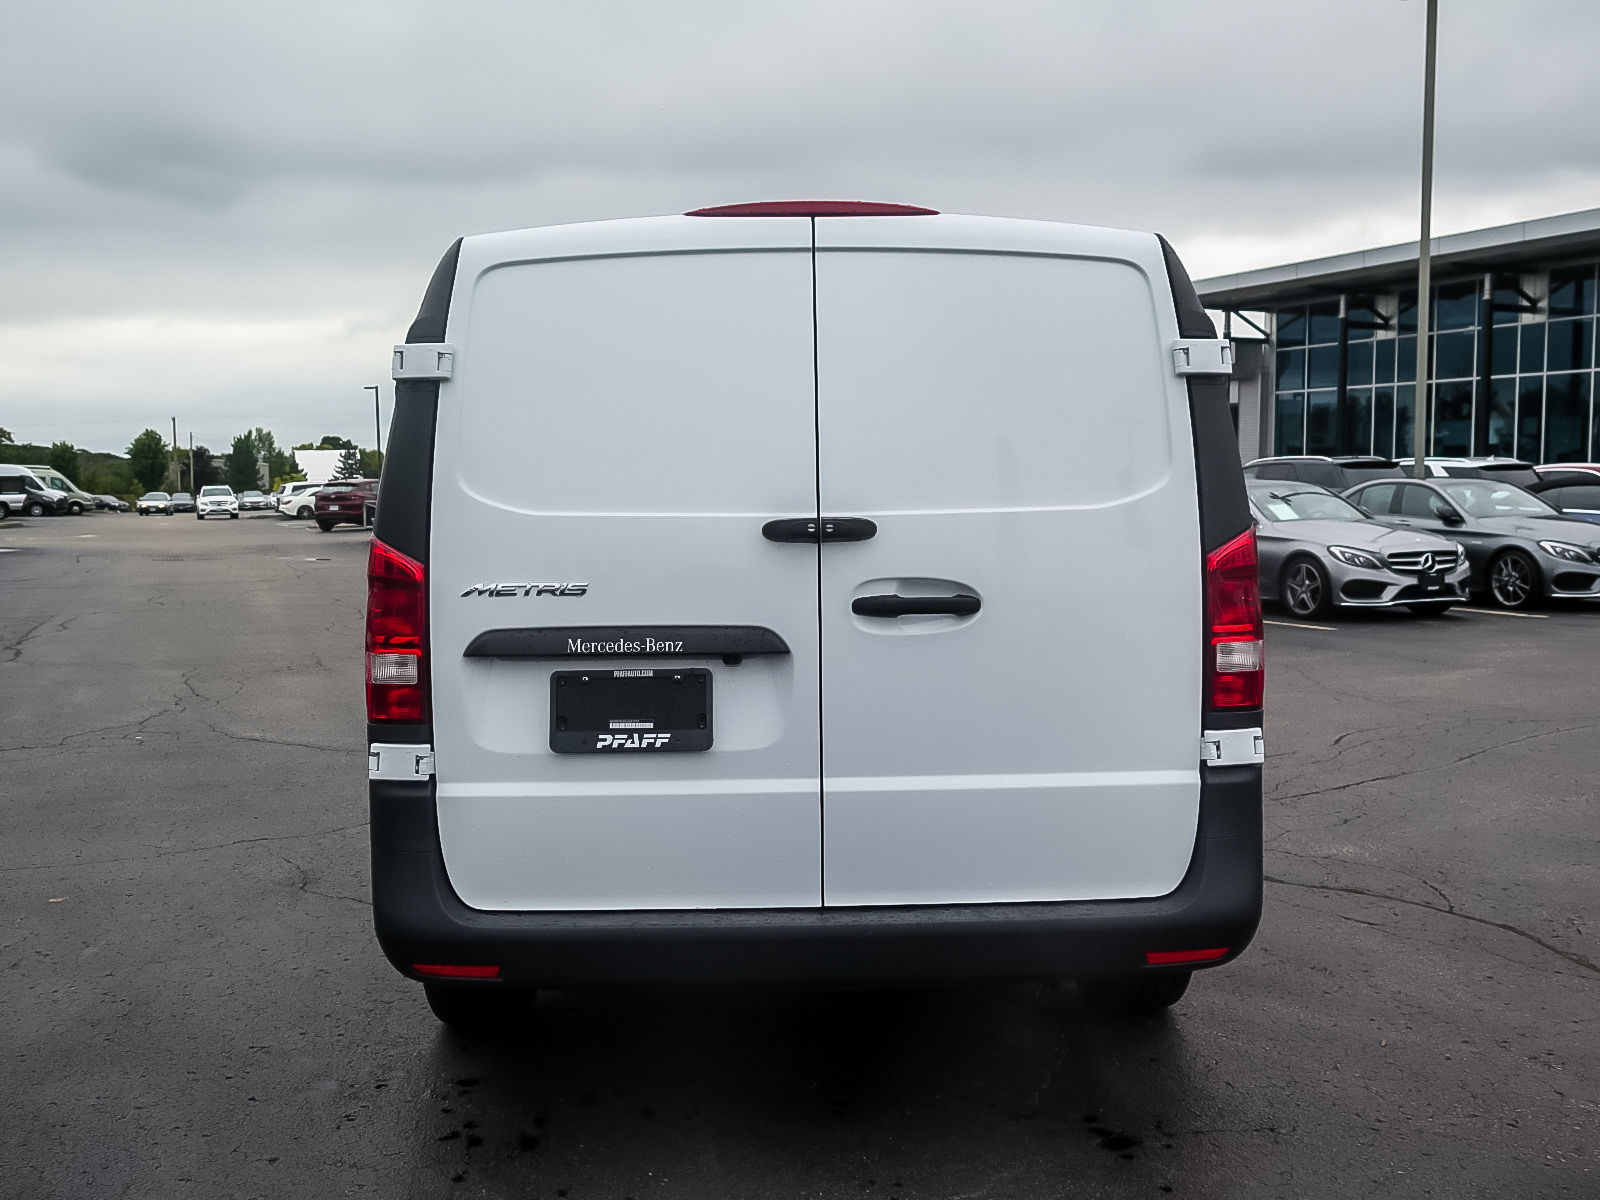 New 2020 Mercedes-Benz Metris Cargo Van 135""